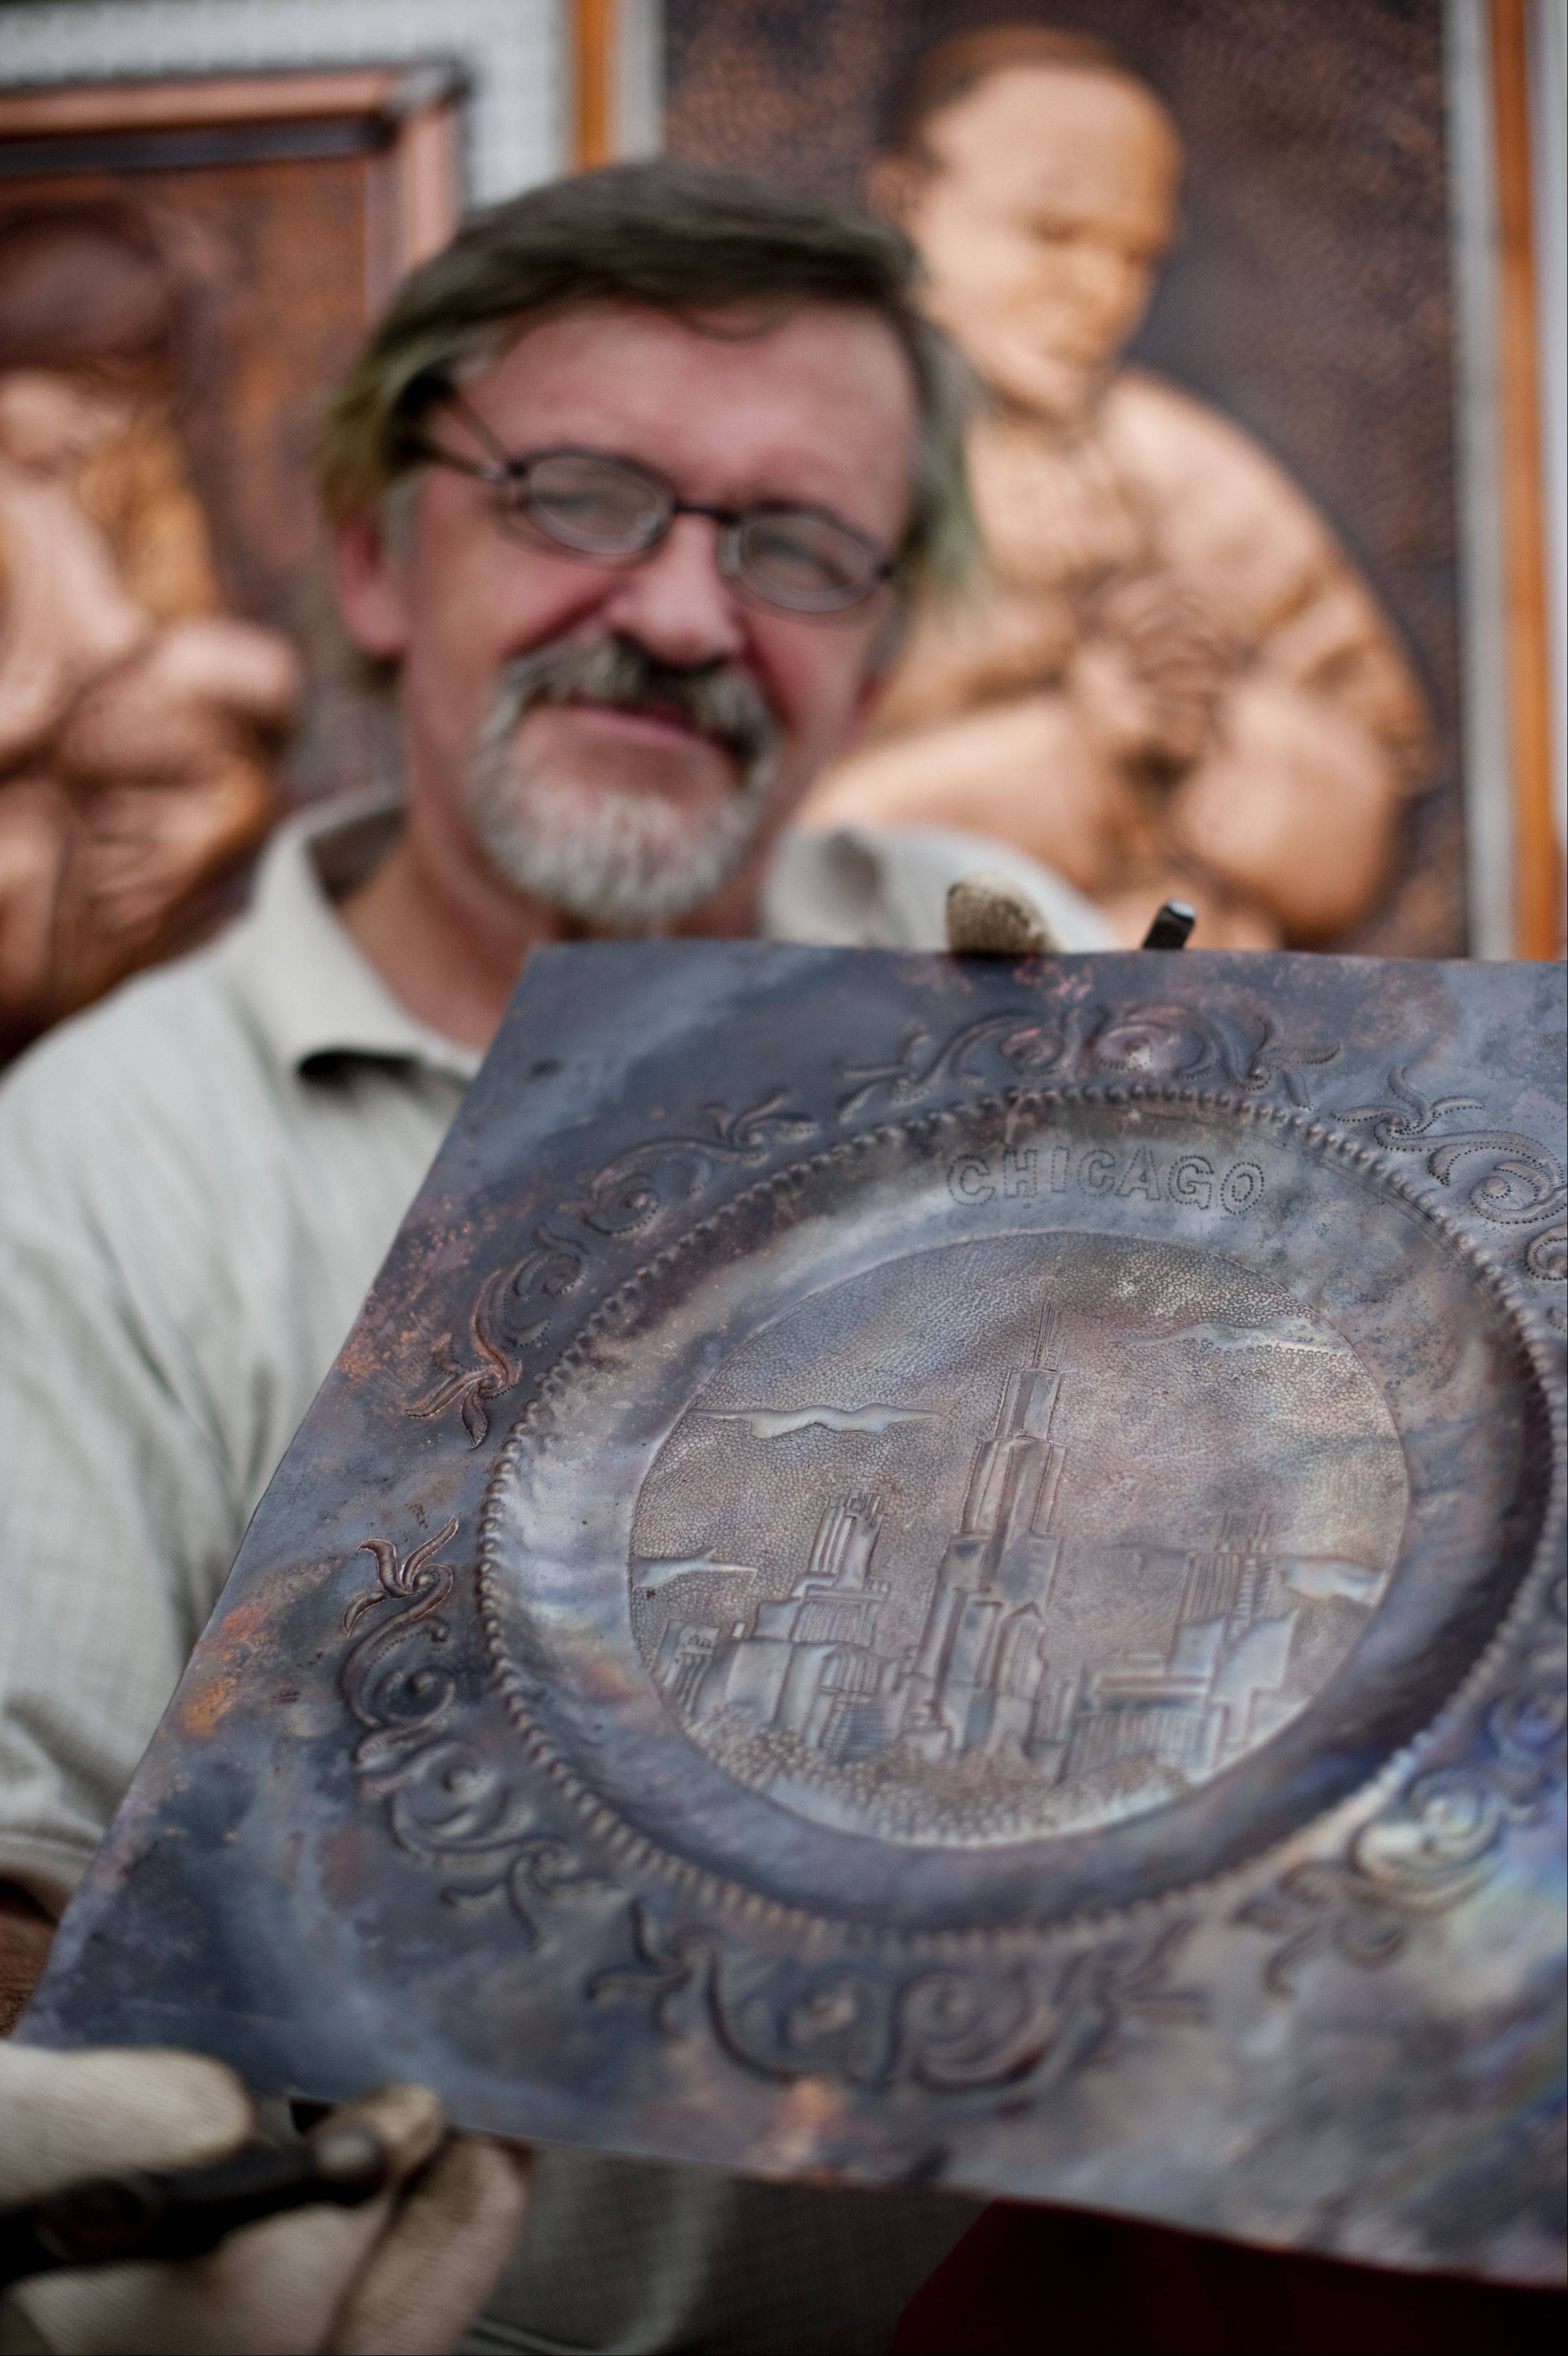 Jozef Andrzejczuk of Mount Prospect displays his copper work at Art & Soul on the Fox in downtown Elgin. The festival features artists working with a variety of mediums including ceramics, glass, metal, photography, watercolors, wood and more.